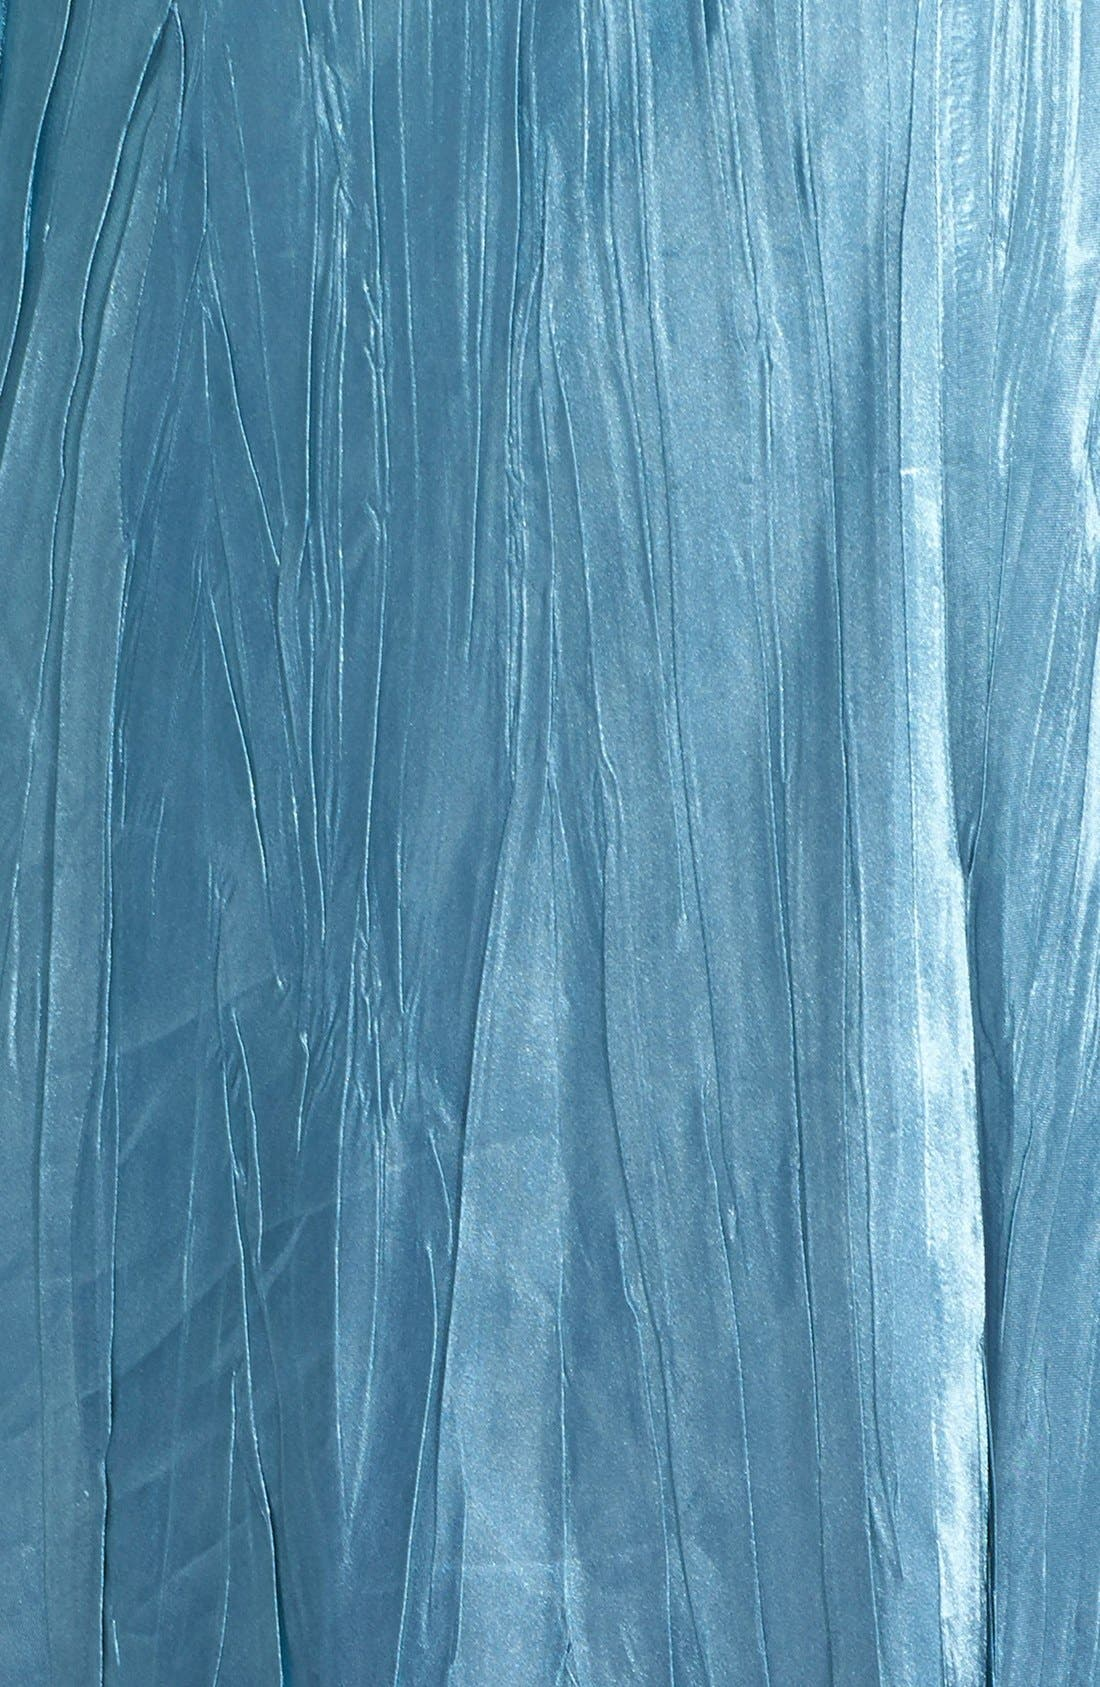 Embellished Charmeuse & Chiffon Dress with Jacket,                             Alternate thumbnail 4, color,                             Silver/ Blue Ombre